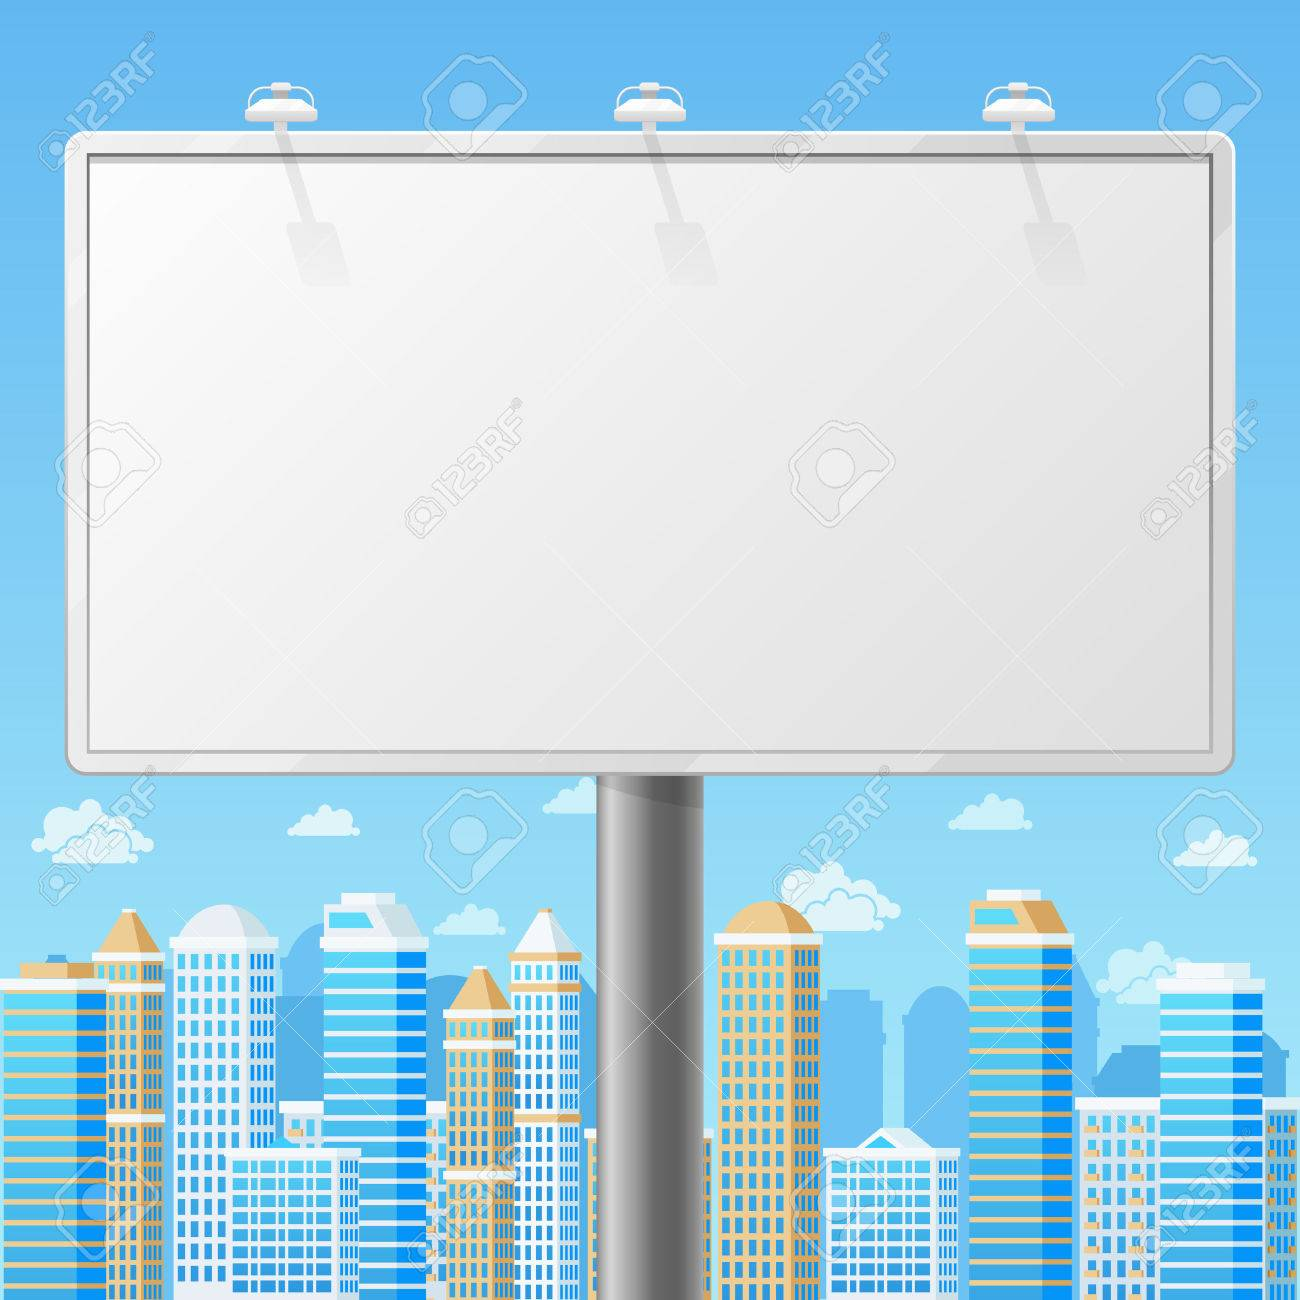 Blank Billboard With Urban Background Advertising Commercial Frame Advertisement Outdoor Board Or